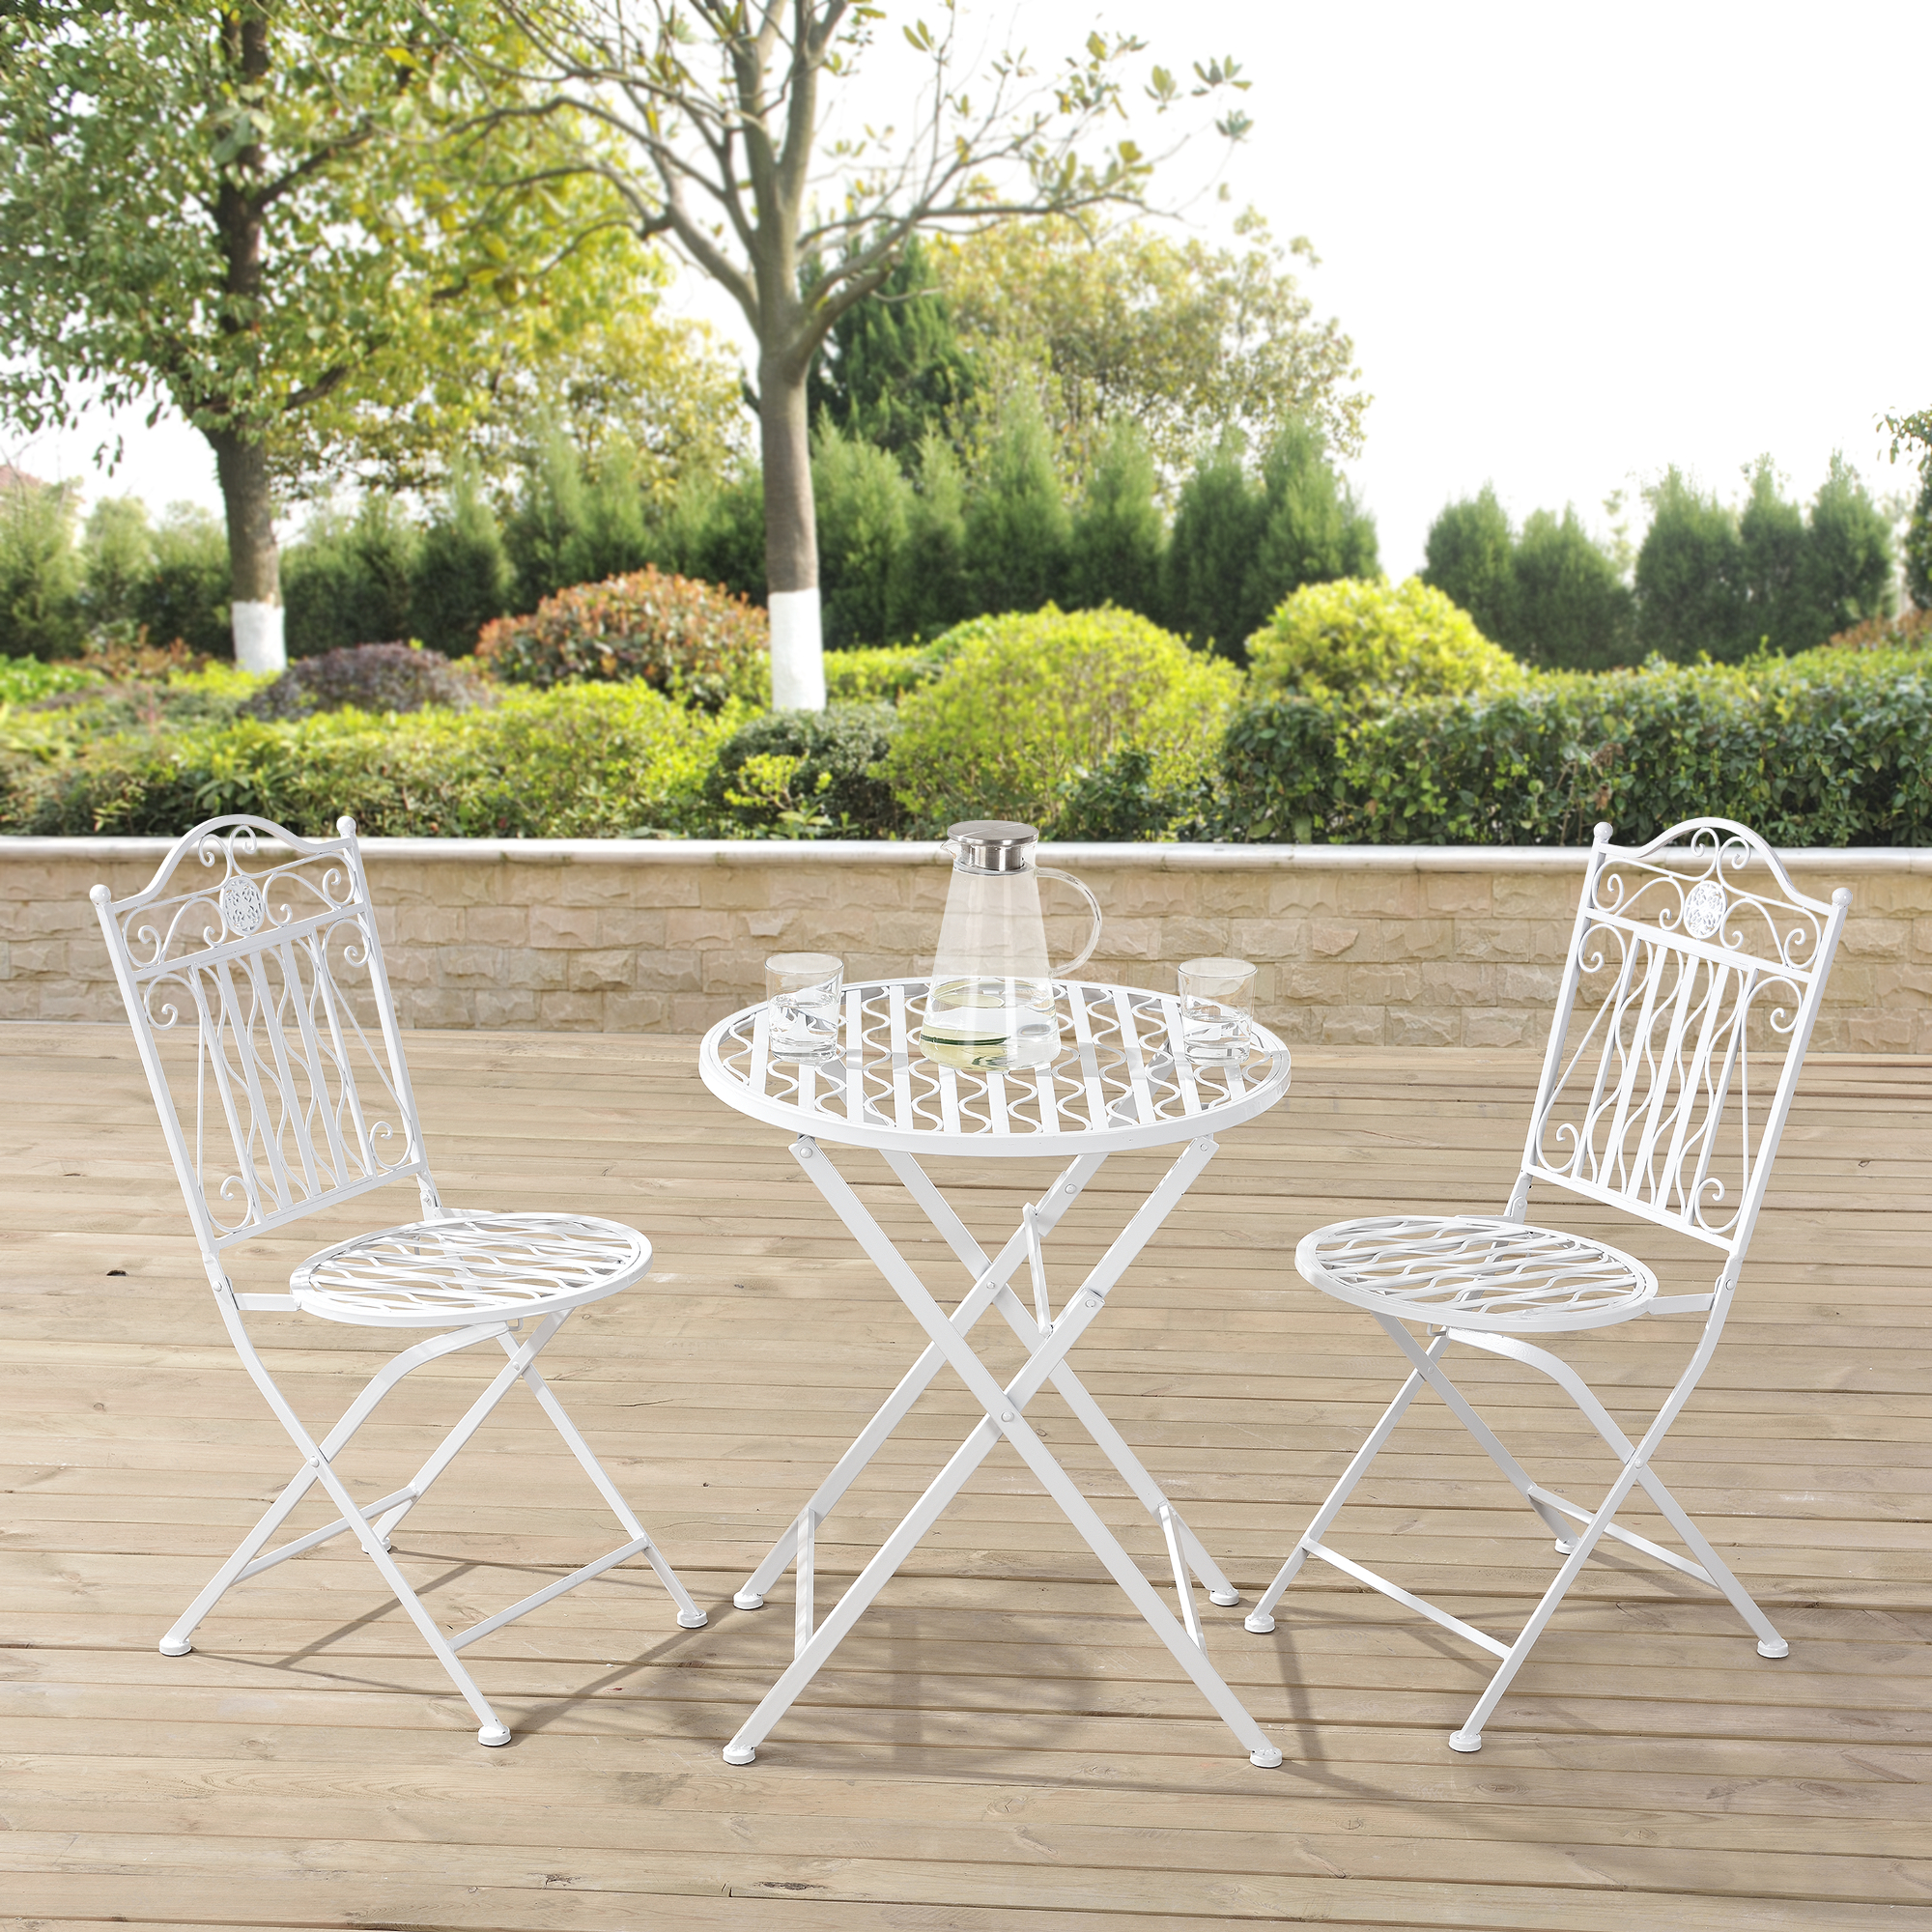 kit set de bistro table 2 chaises meuble de jardin m tal ensemble ebay. Black Bedroom Furniture Sets. Home Design Ideas